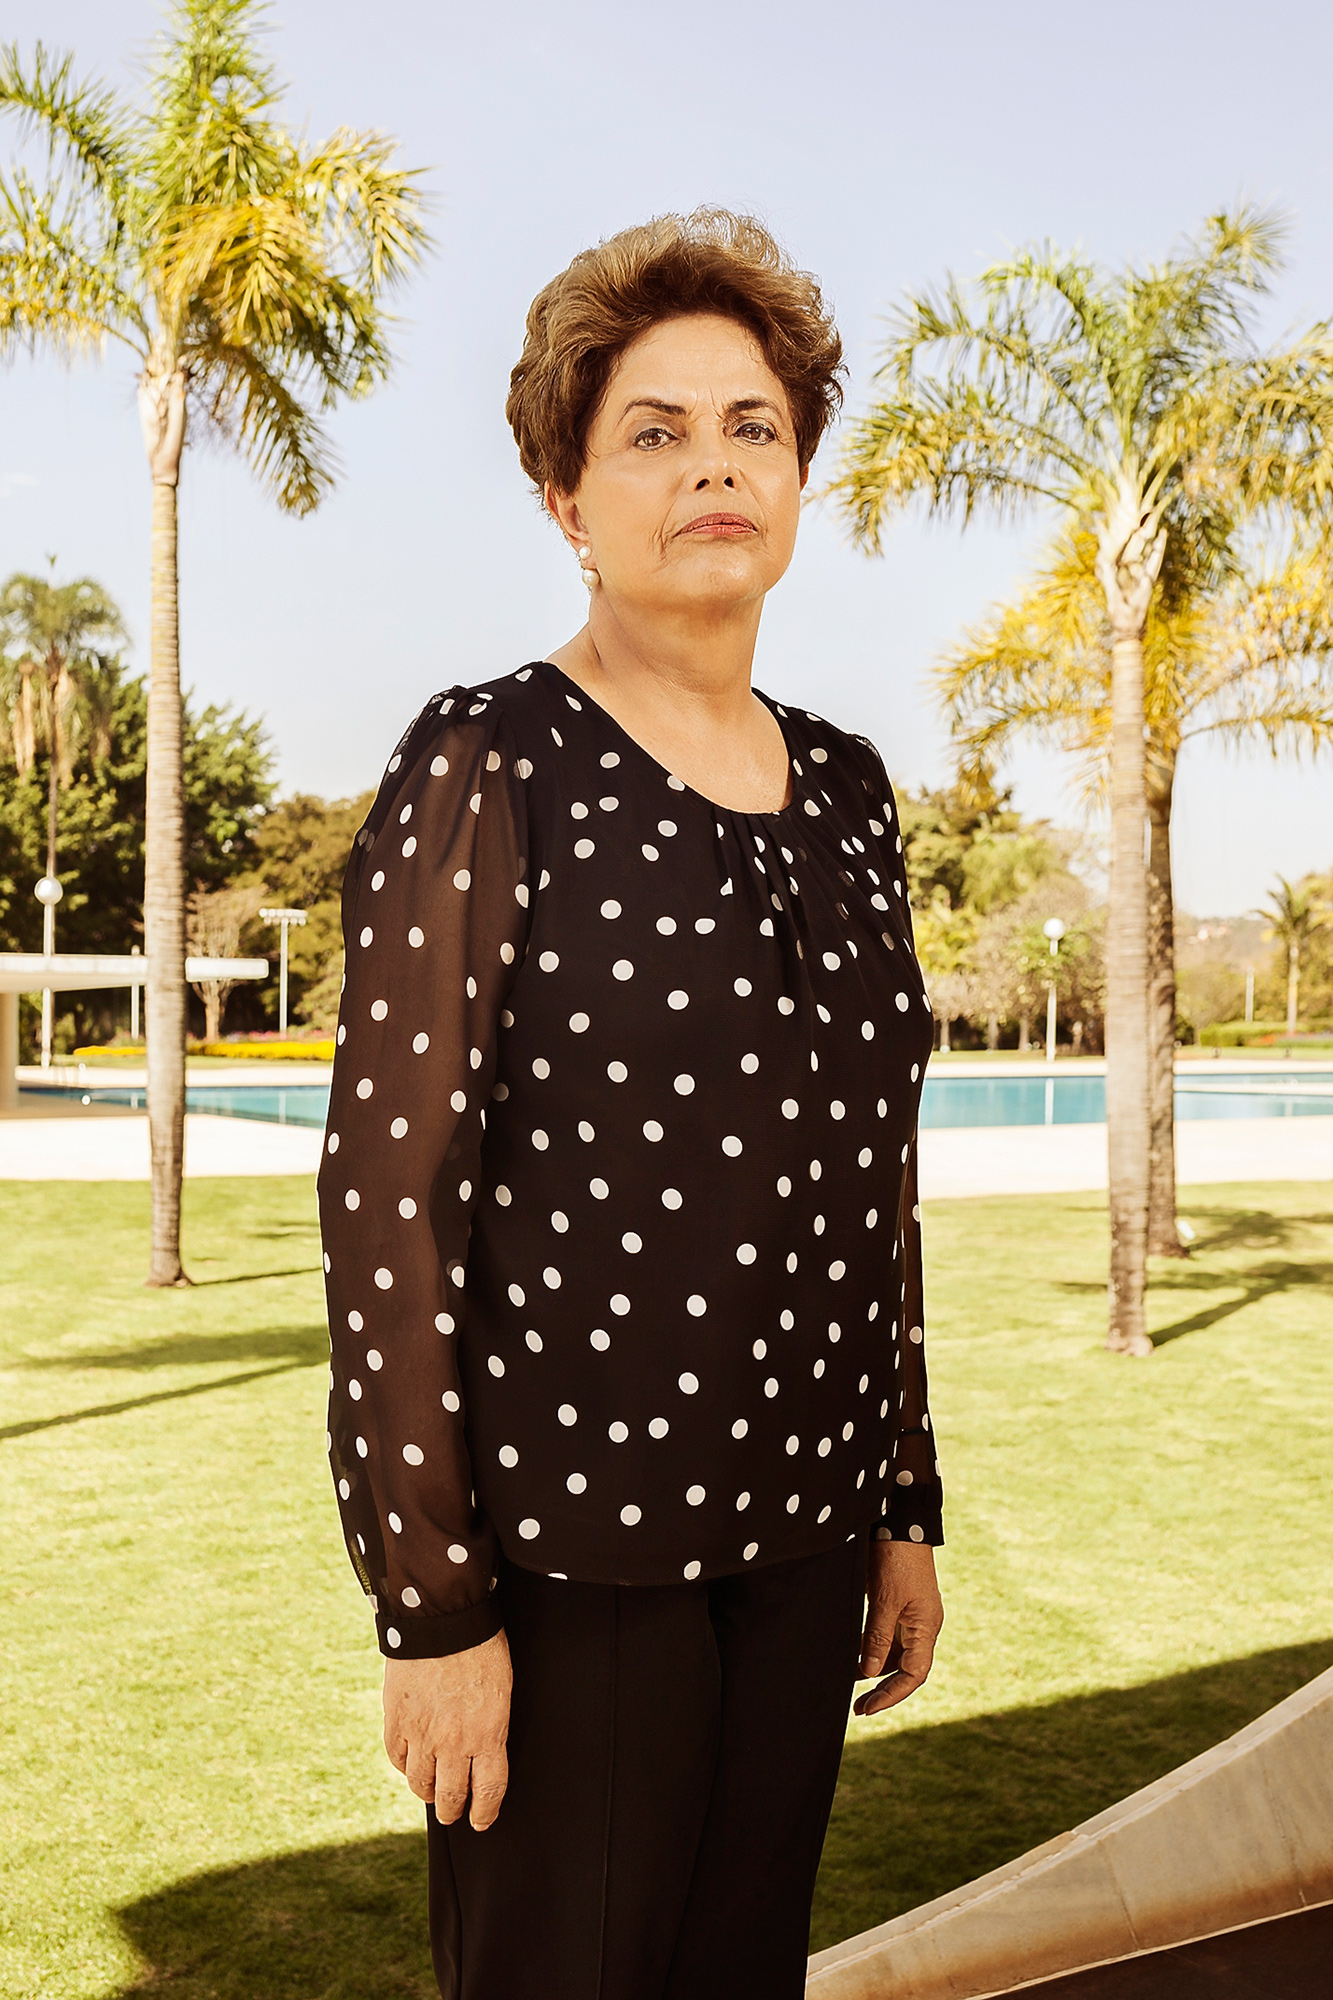 Dilma Rousseff photographed at Alvorada Palace in Brasilia, Brazil on July 22, 2016.From  Brazil's Dilma Rousseff on Her Impeachment Trial, the Olympics and Zika